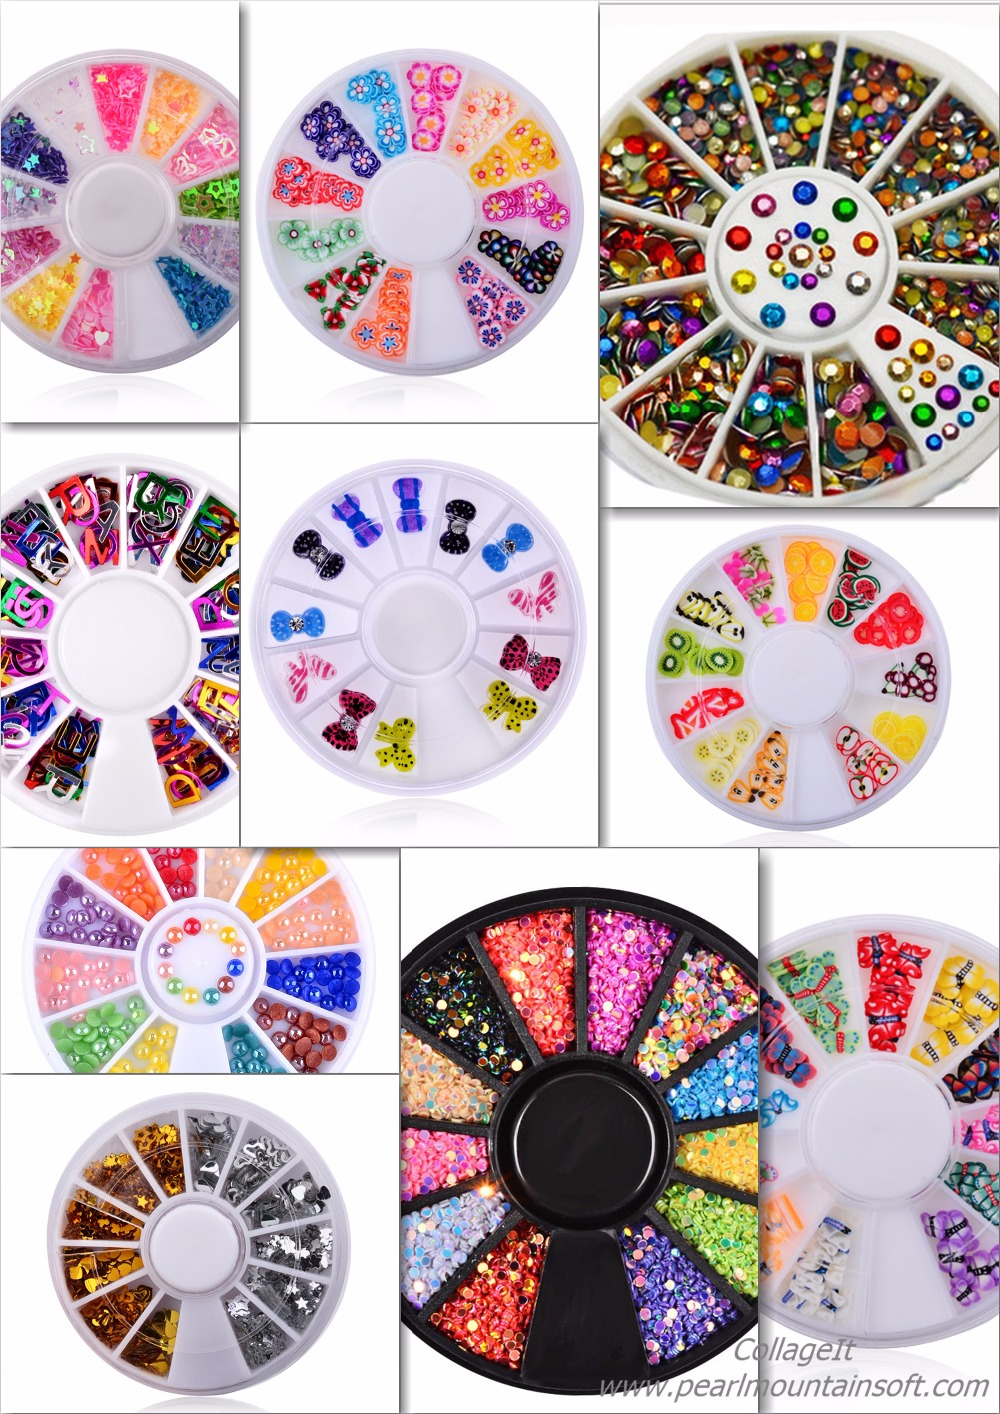 3D Cystal Colourful Nail Art Decoration Wheel,Harf Pearl Stone Sequins Nail Art Rhinestones Different shapes Manicure Supplies ...